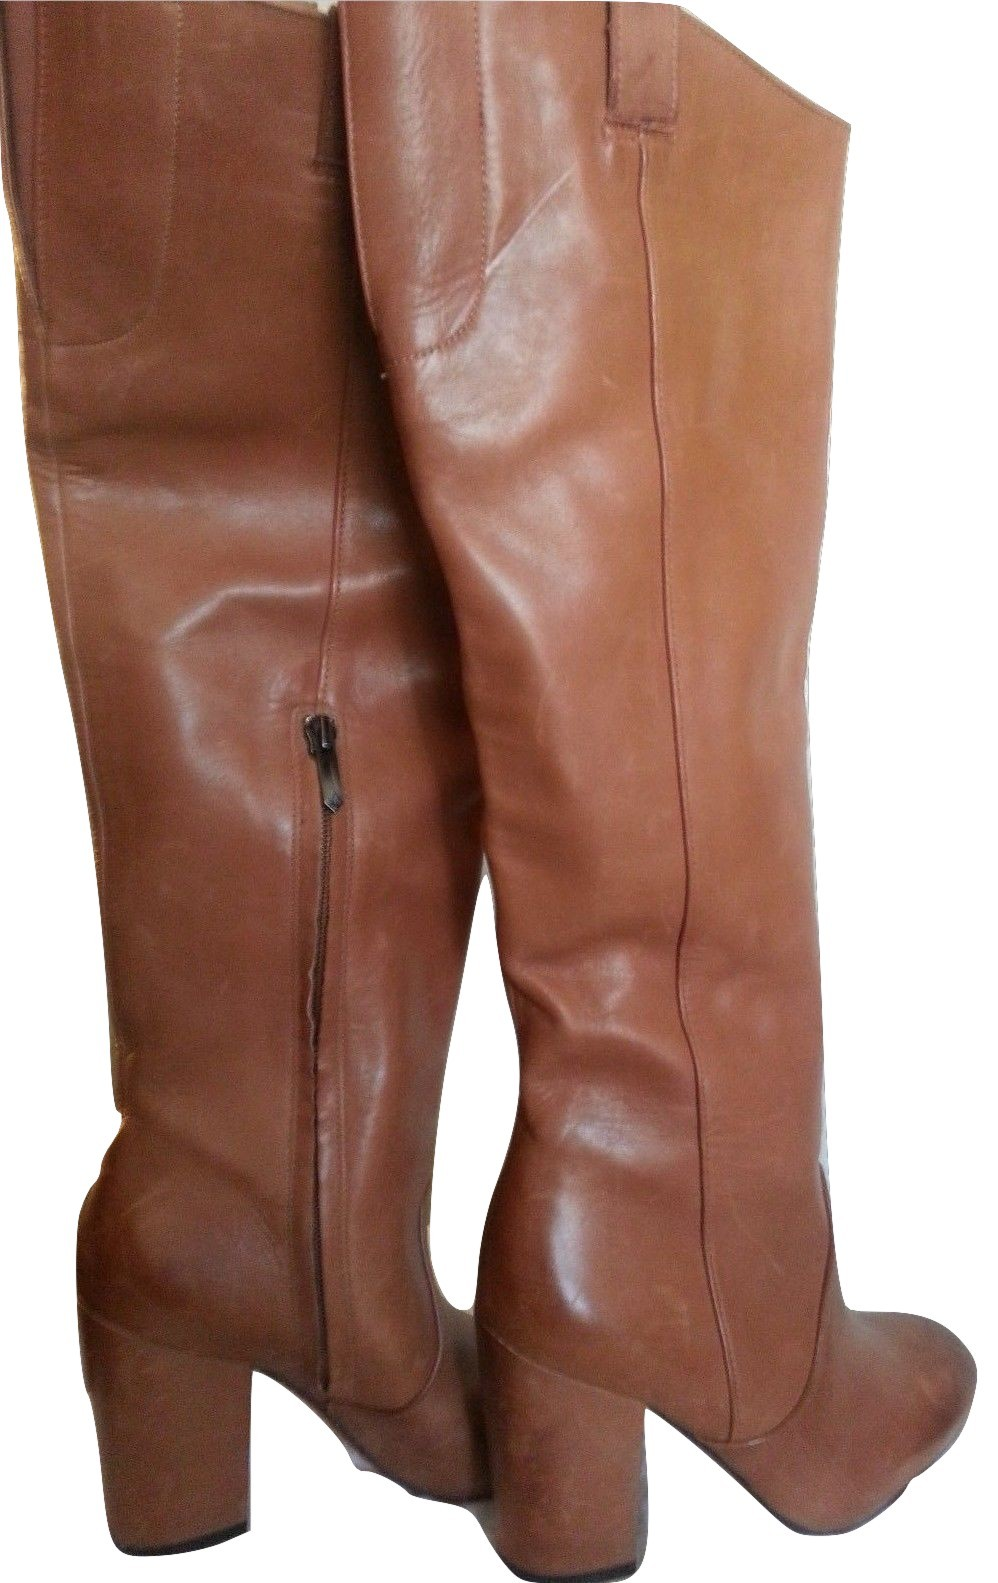 a3233ee0503f Img 4311718165 1500269087. Img 4311718165 1500269087. Sam Edelman Loren Womens  Leather Fashion Knee-High Boots ...